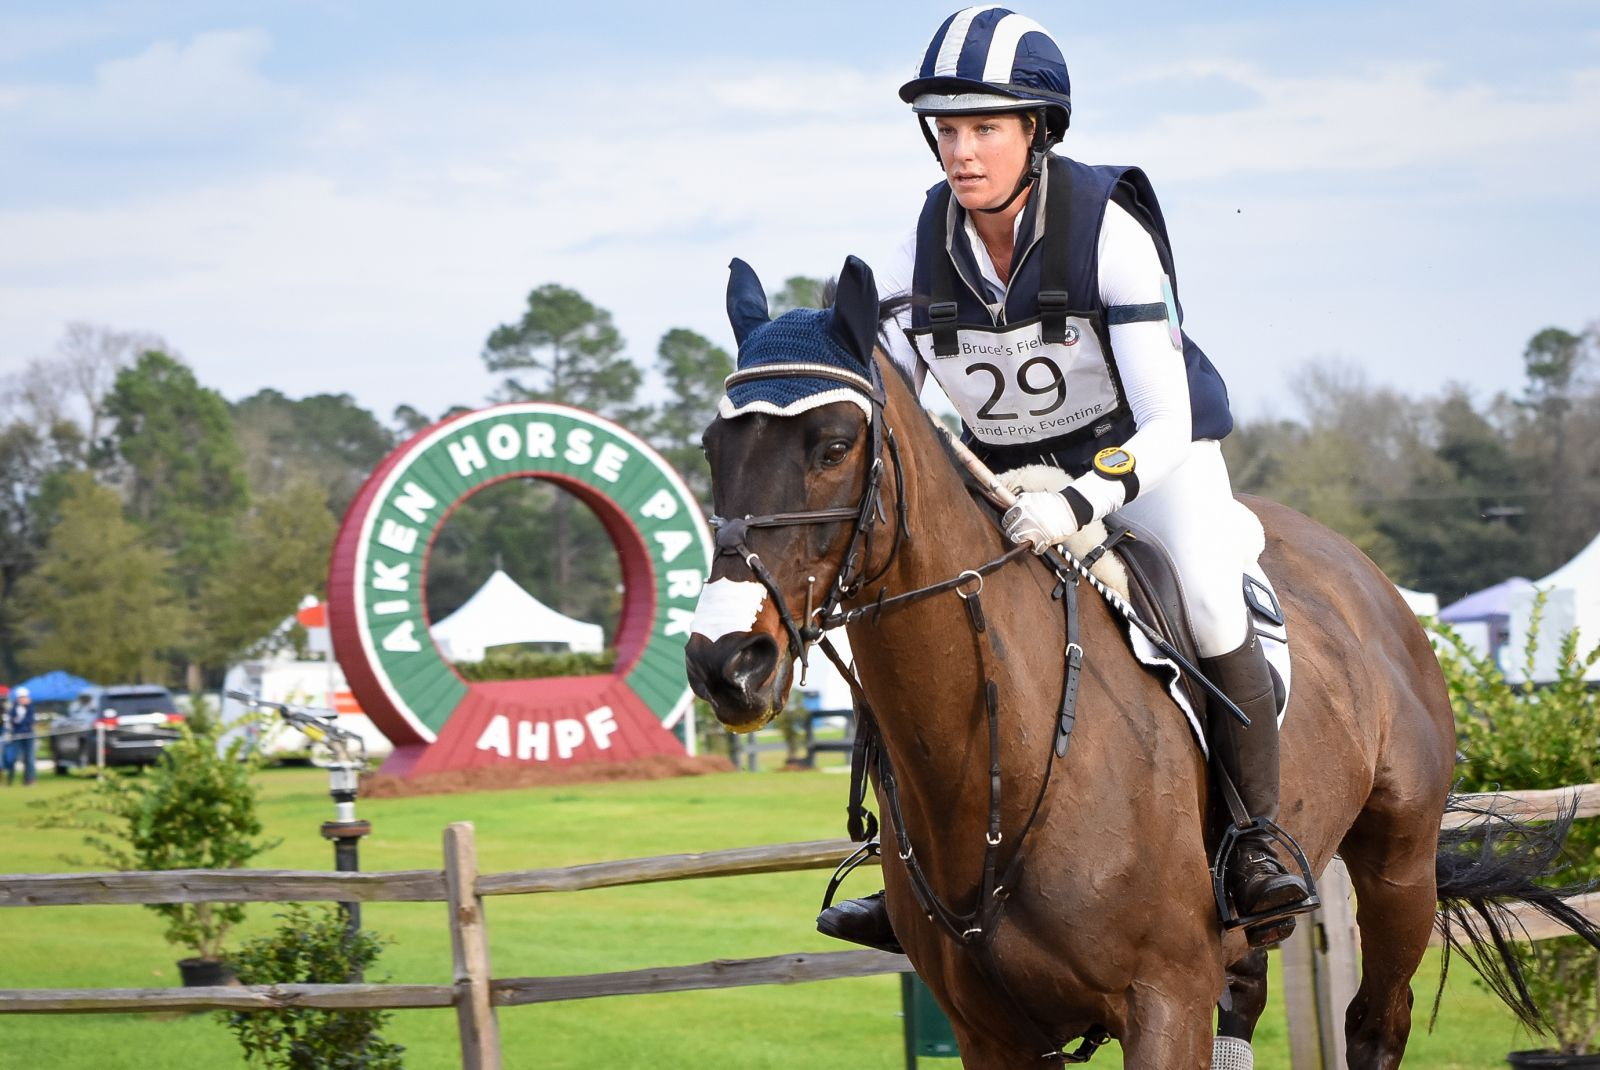 Bruce's Field Celebrates Thoroughbreds + Much More 'In The Park' - Eventing Nation - Three-Day Eventing News, Results, Videos, and Commentary